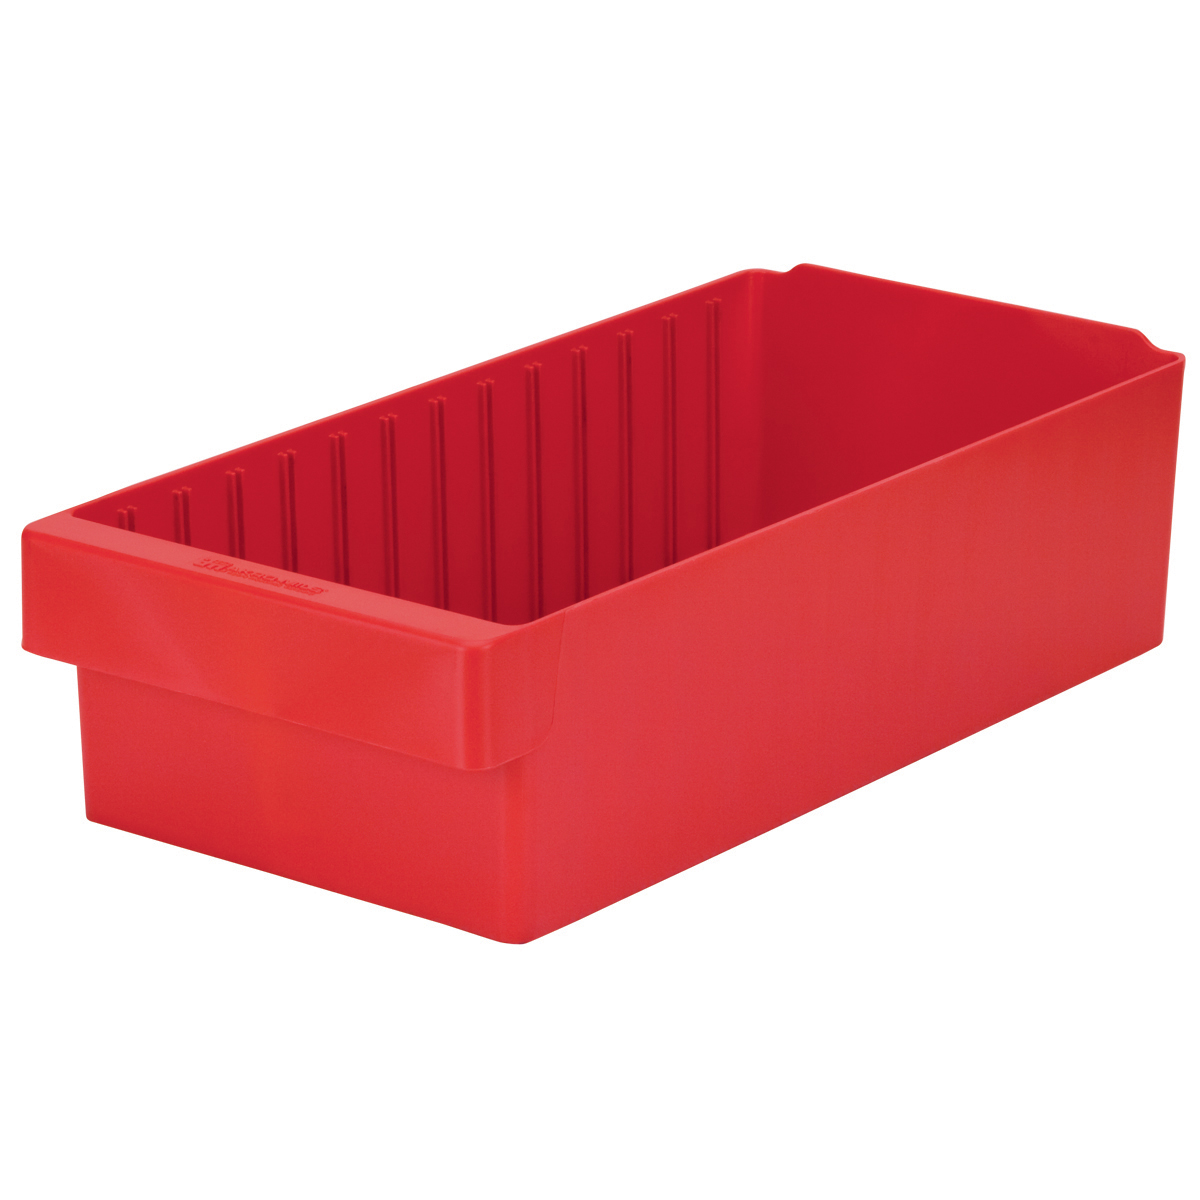 AkroDrawer 17-5/8 x 8-3/8 x 4-5/8, Red (31188RED).  This item sold in carton quantities of 4.